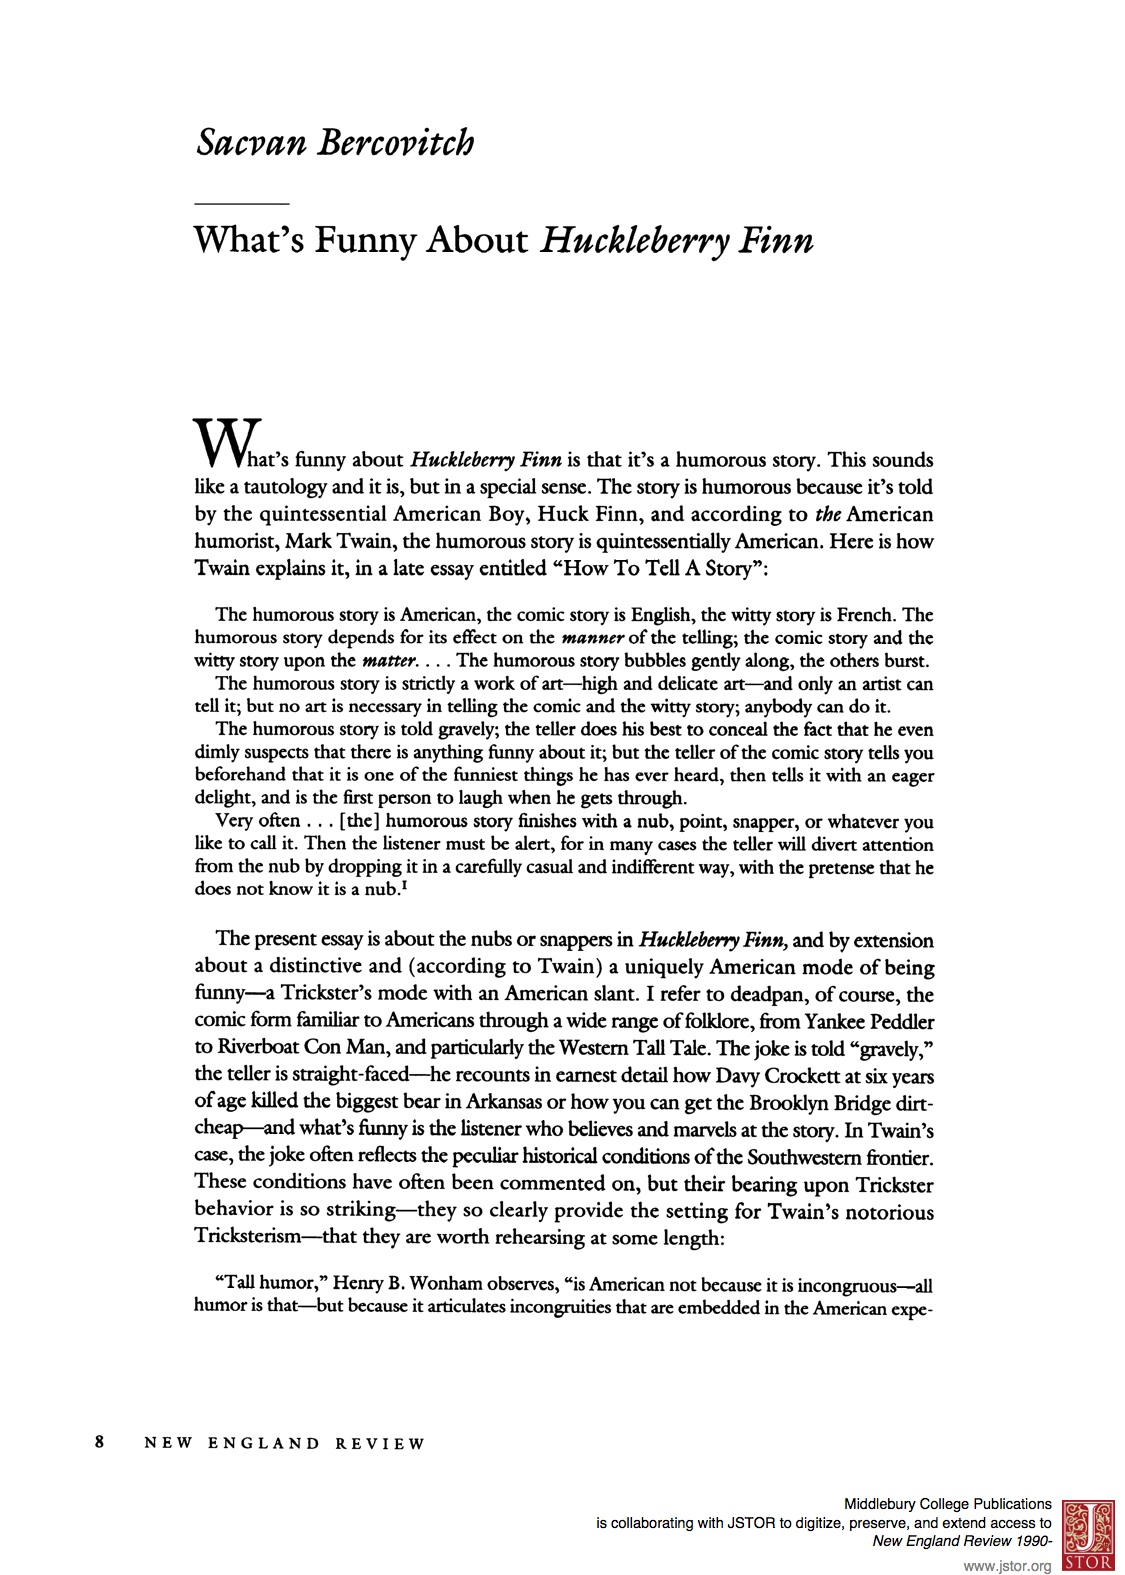 huckleberry finn book review buy essay nereview com